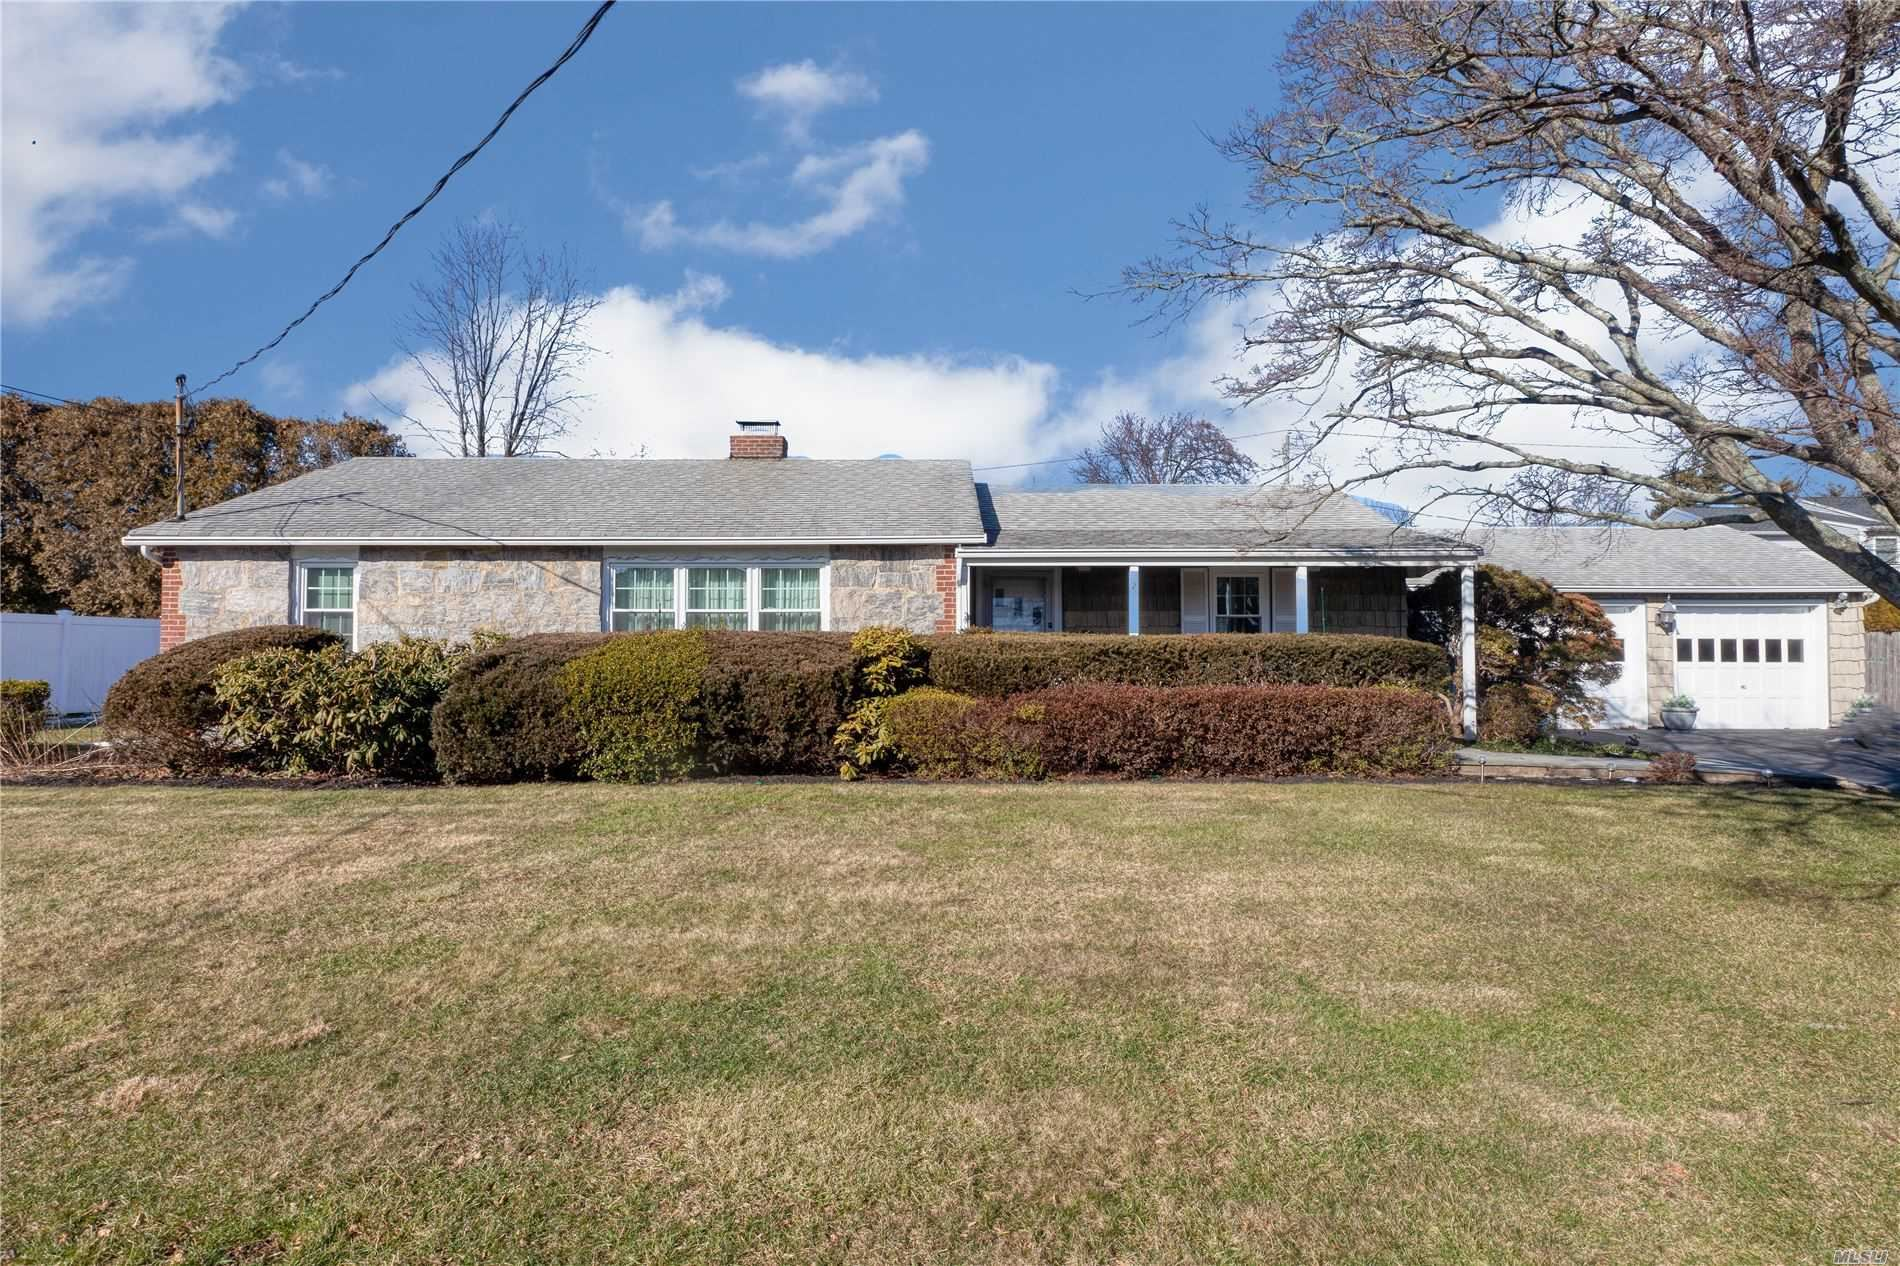 24 Northern Pkwy E., Plainview, NY 11803 - MLS#: 3192208